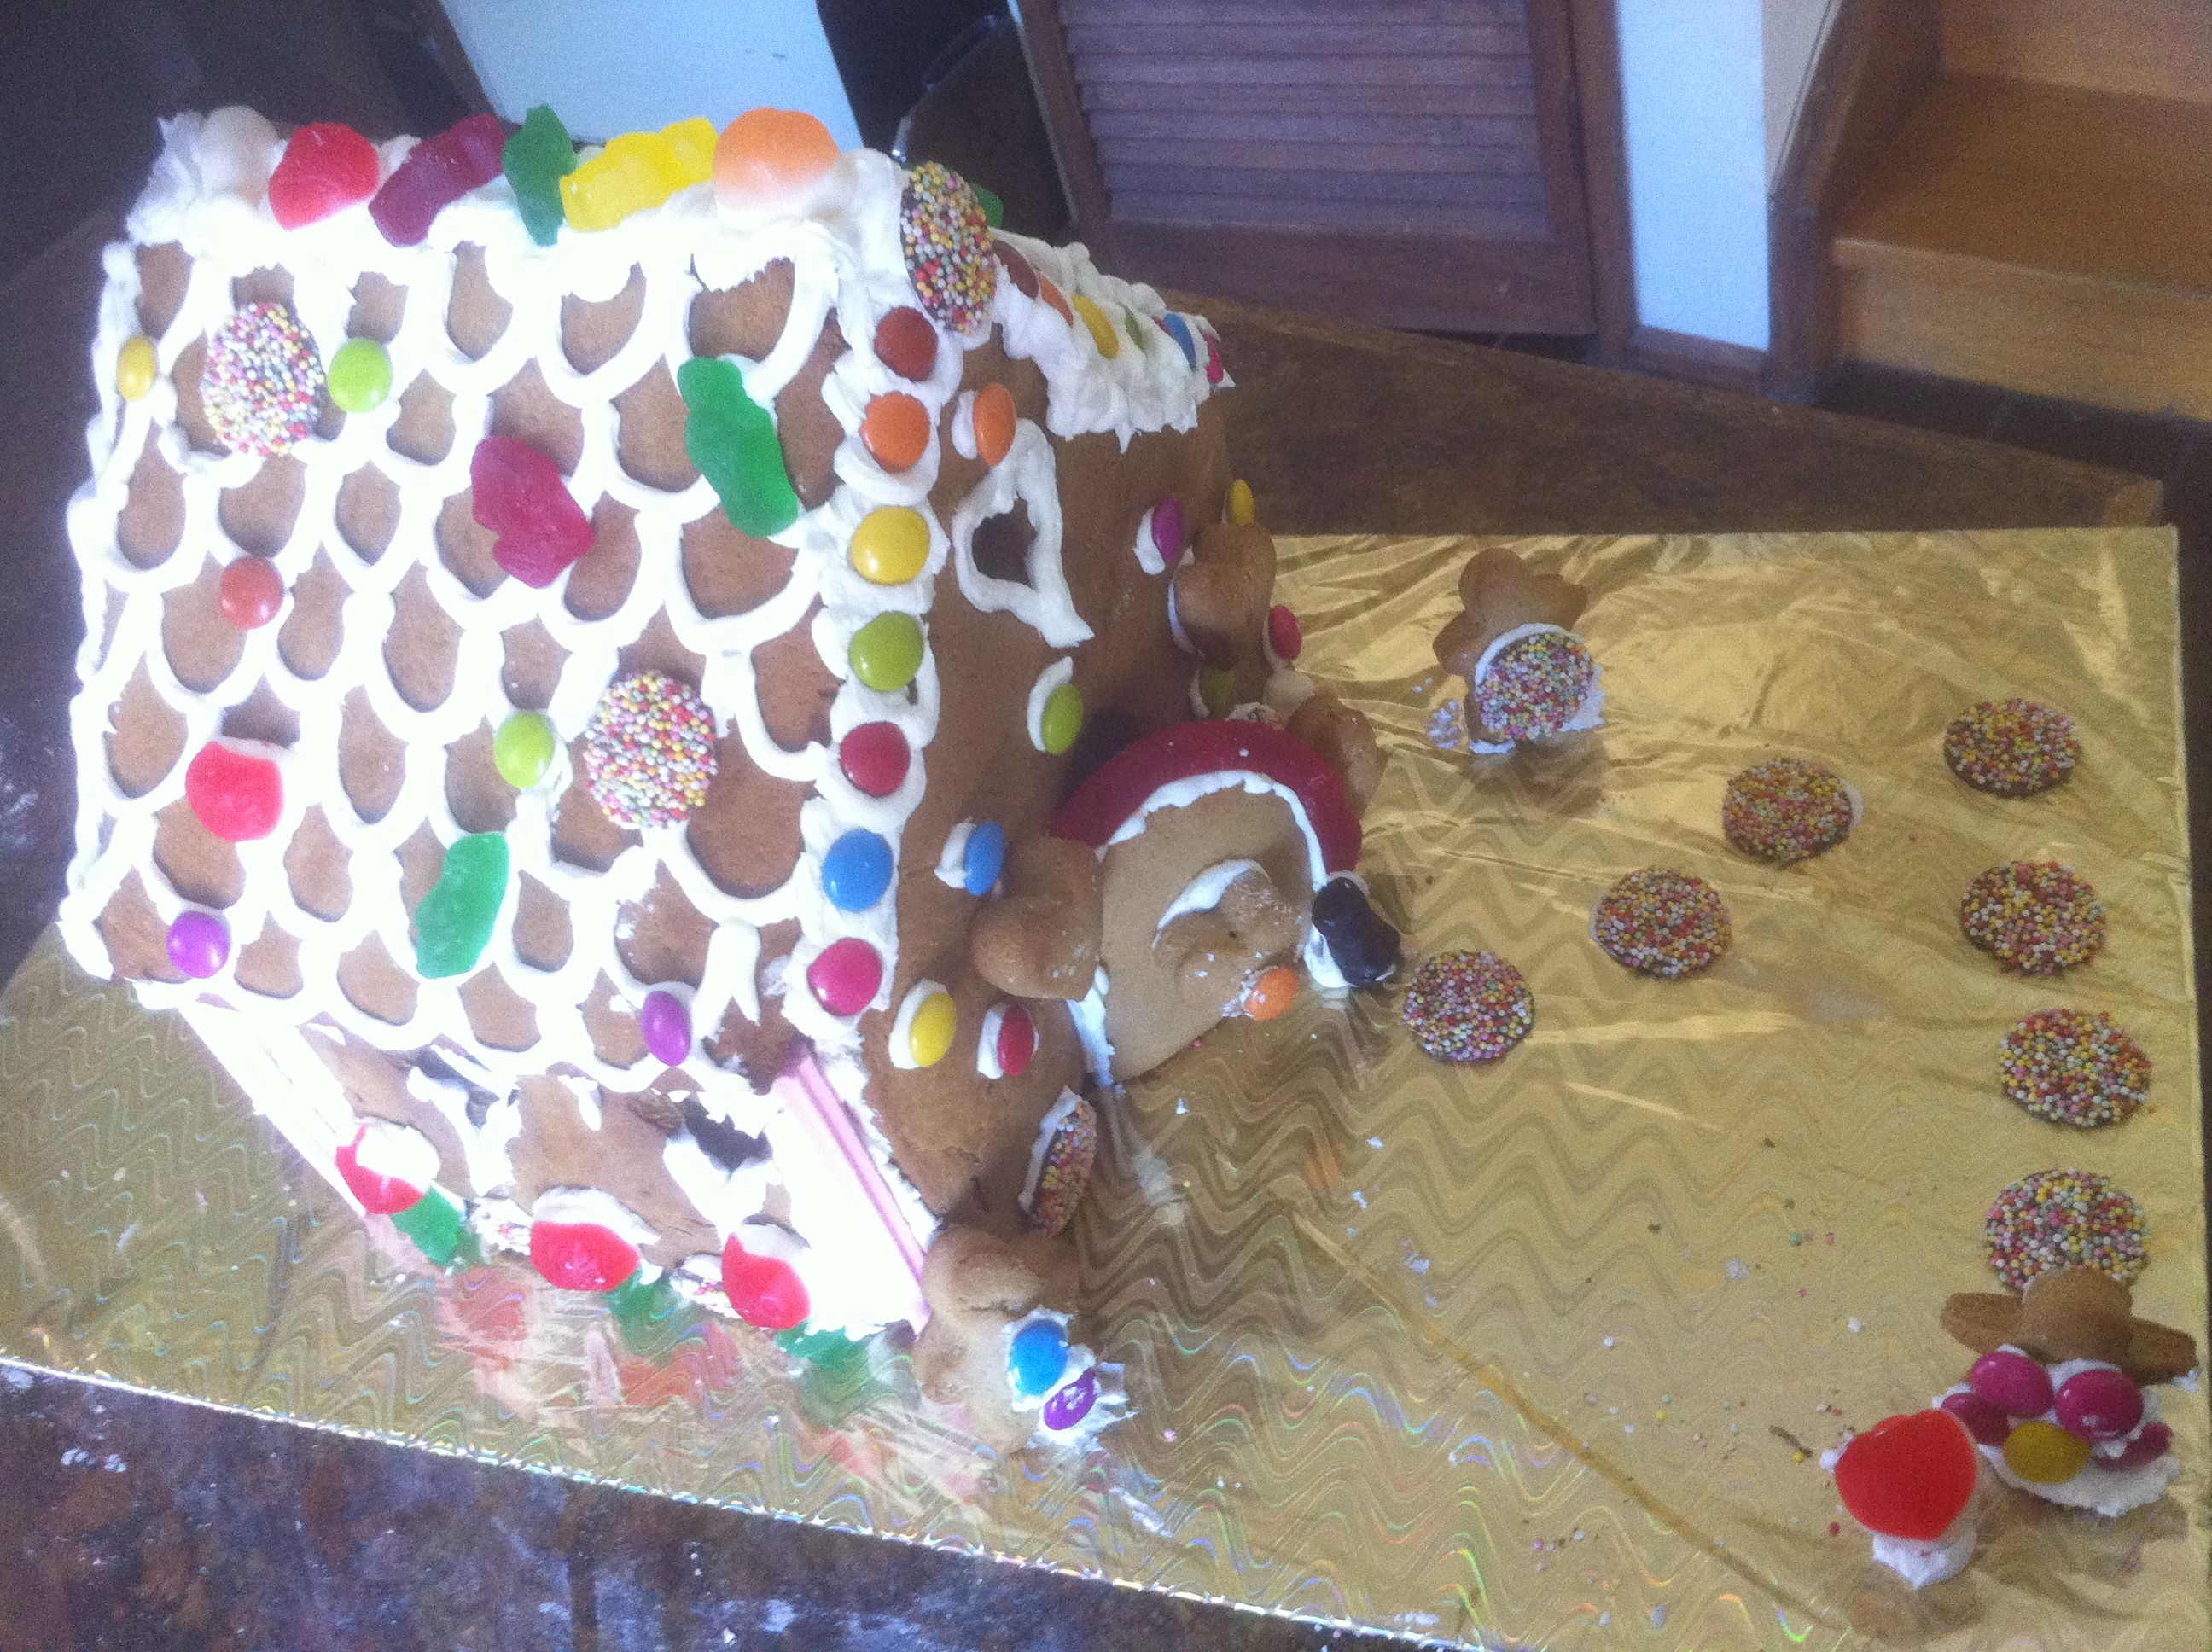 Ginger bread house I made for a friend :)